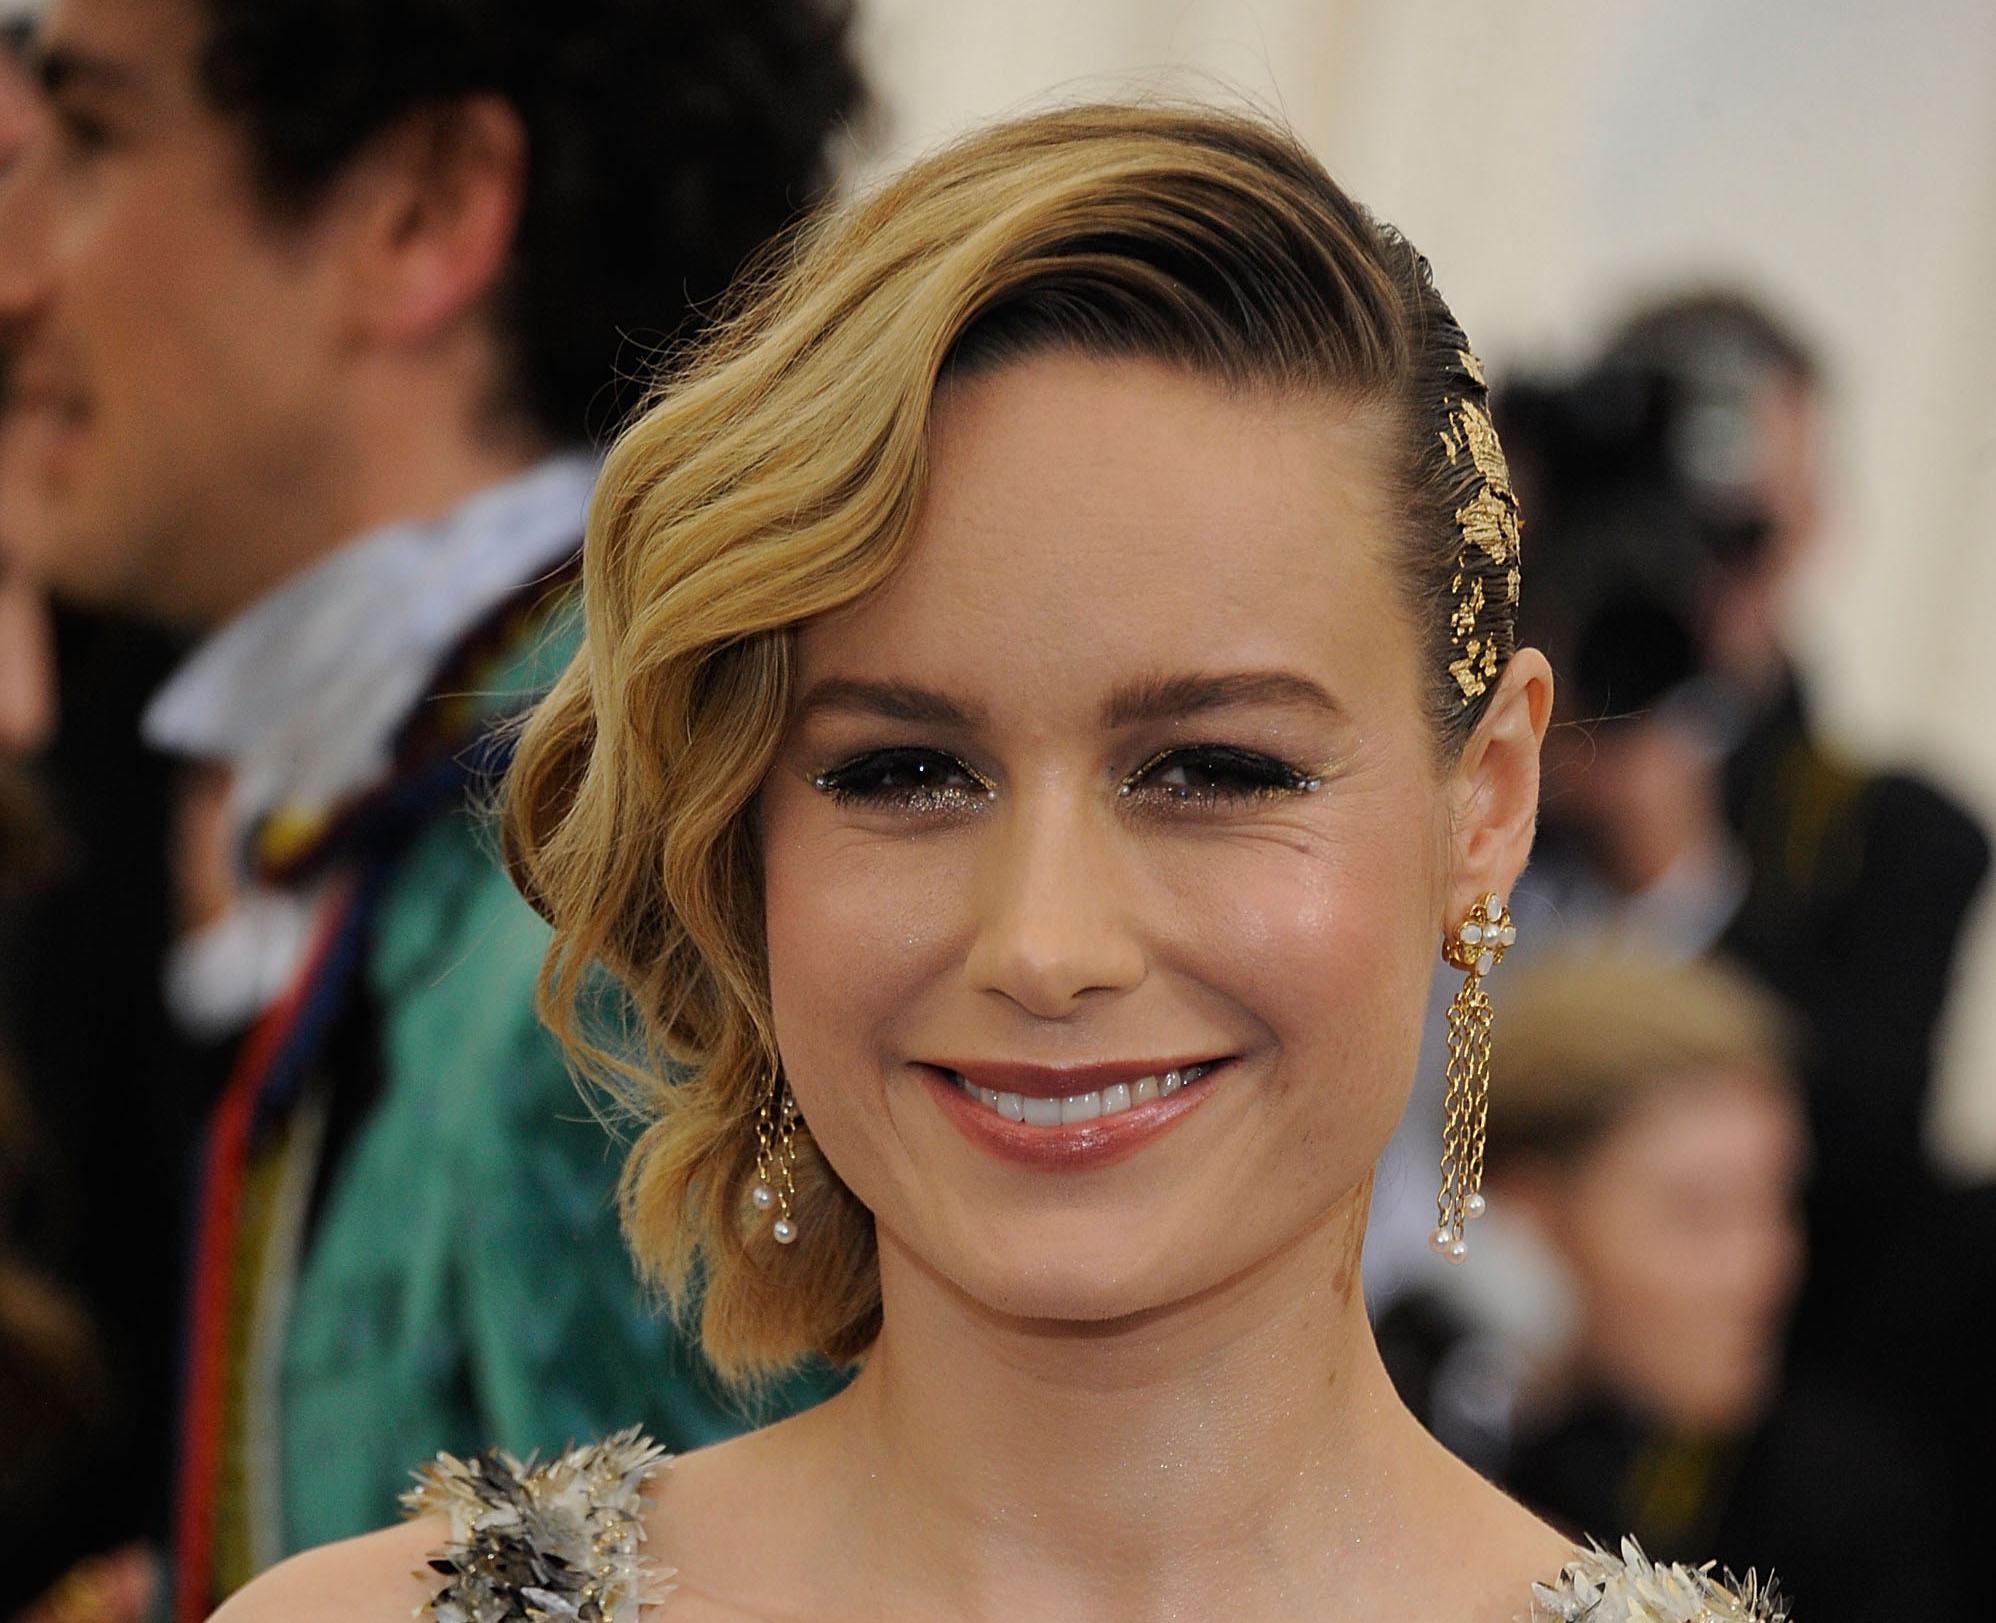 Brie Larson went to the bathroom at the Met Gala, accidentally became a meme